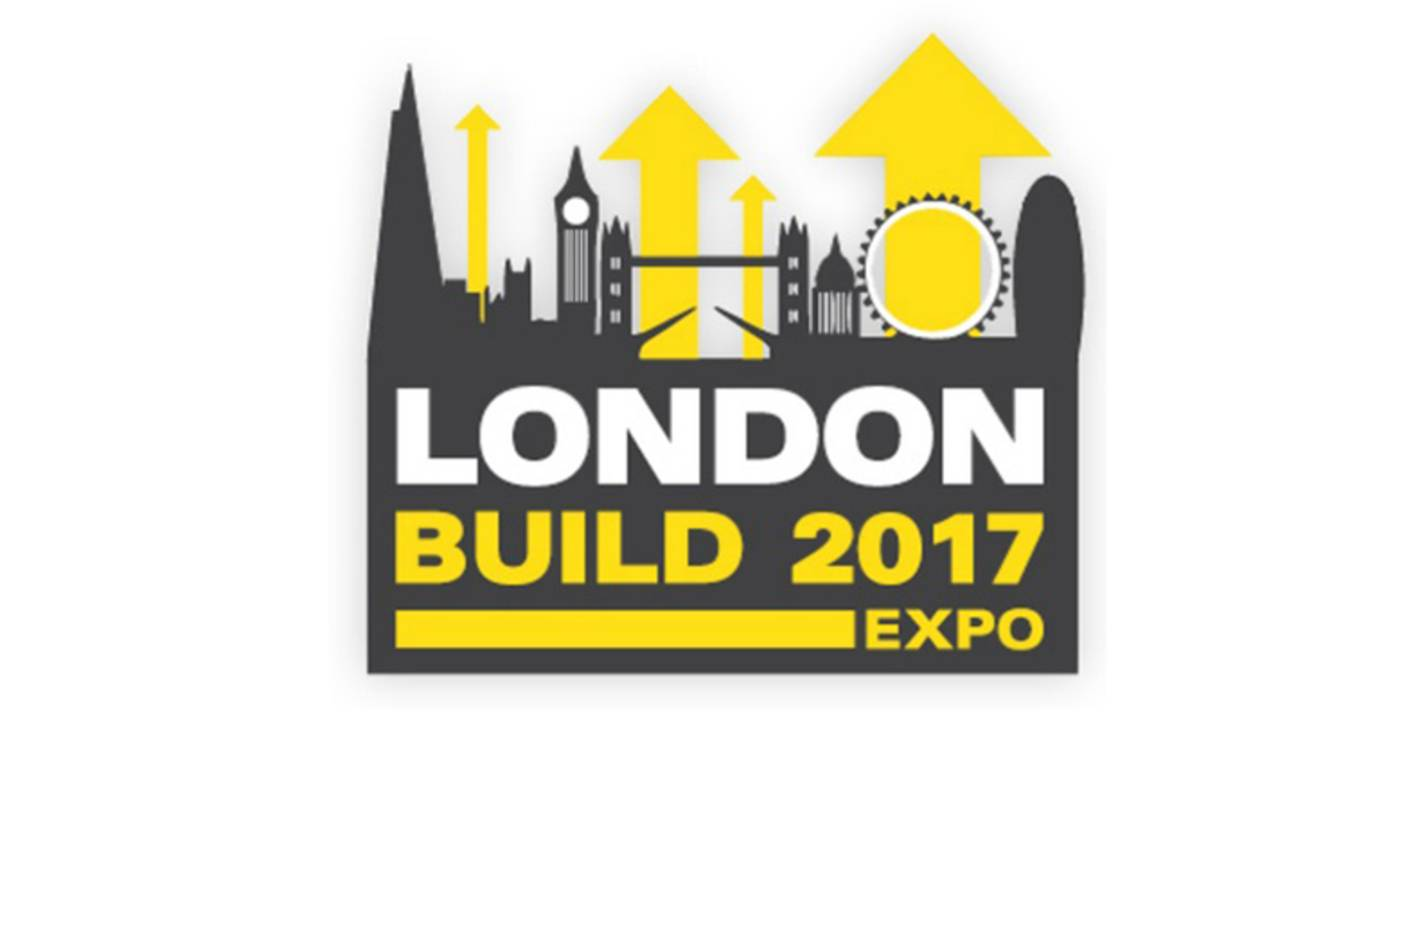 London Build 2017 – London's Leading Construction Show Begins Tomorrow